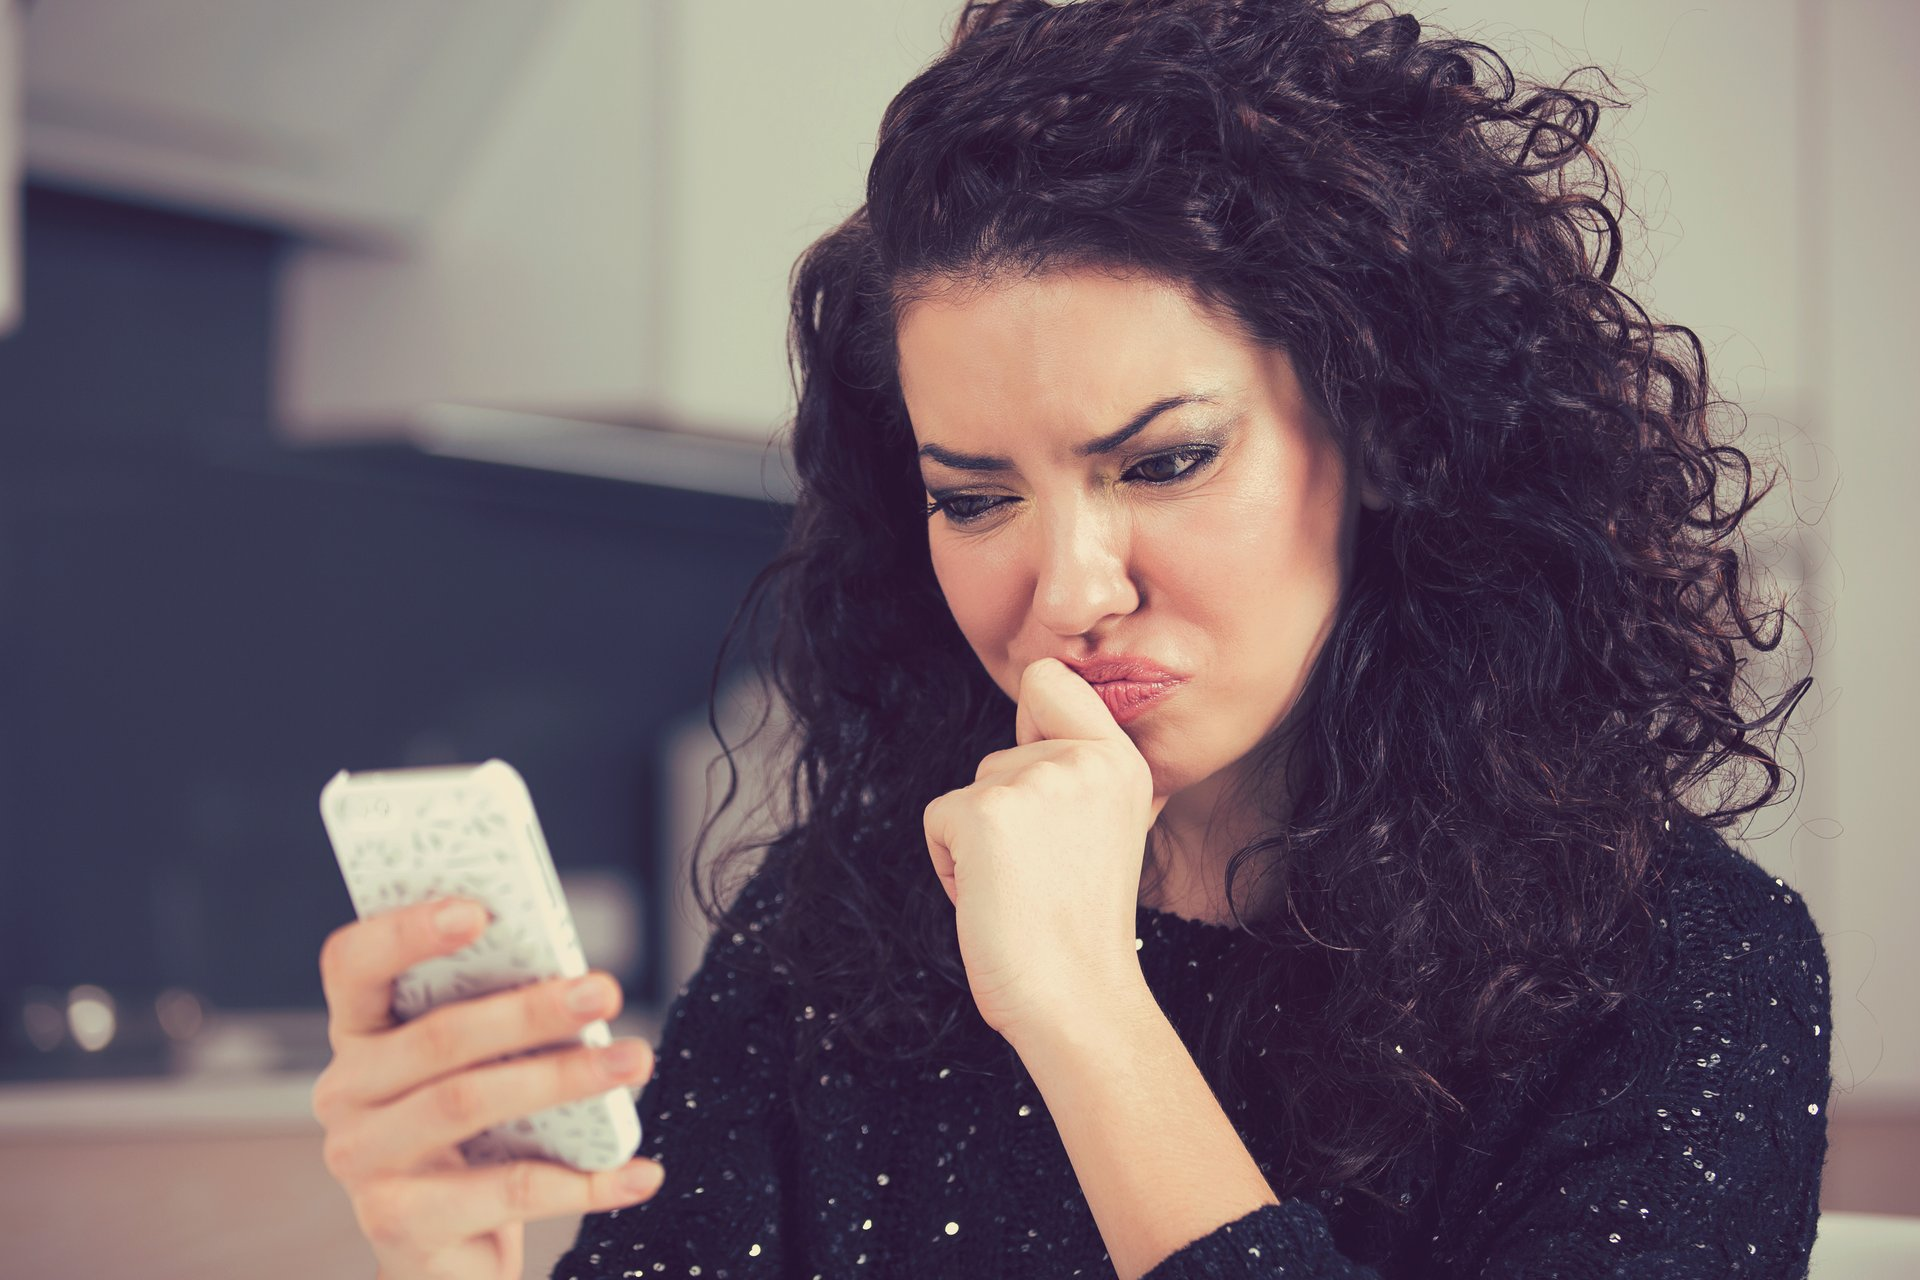 Woman looking stressed, looking at cellphone